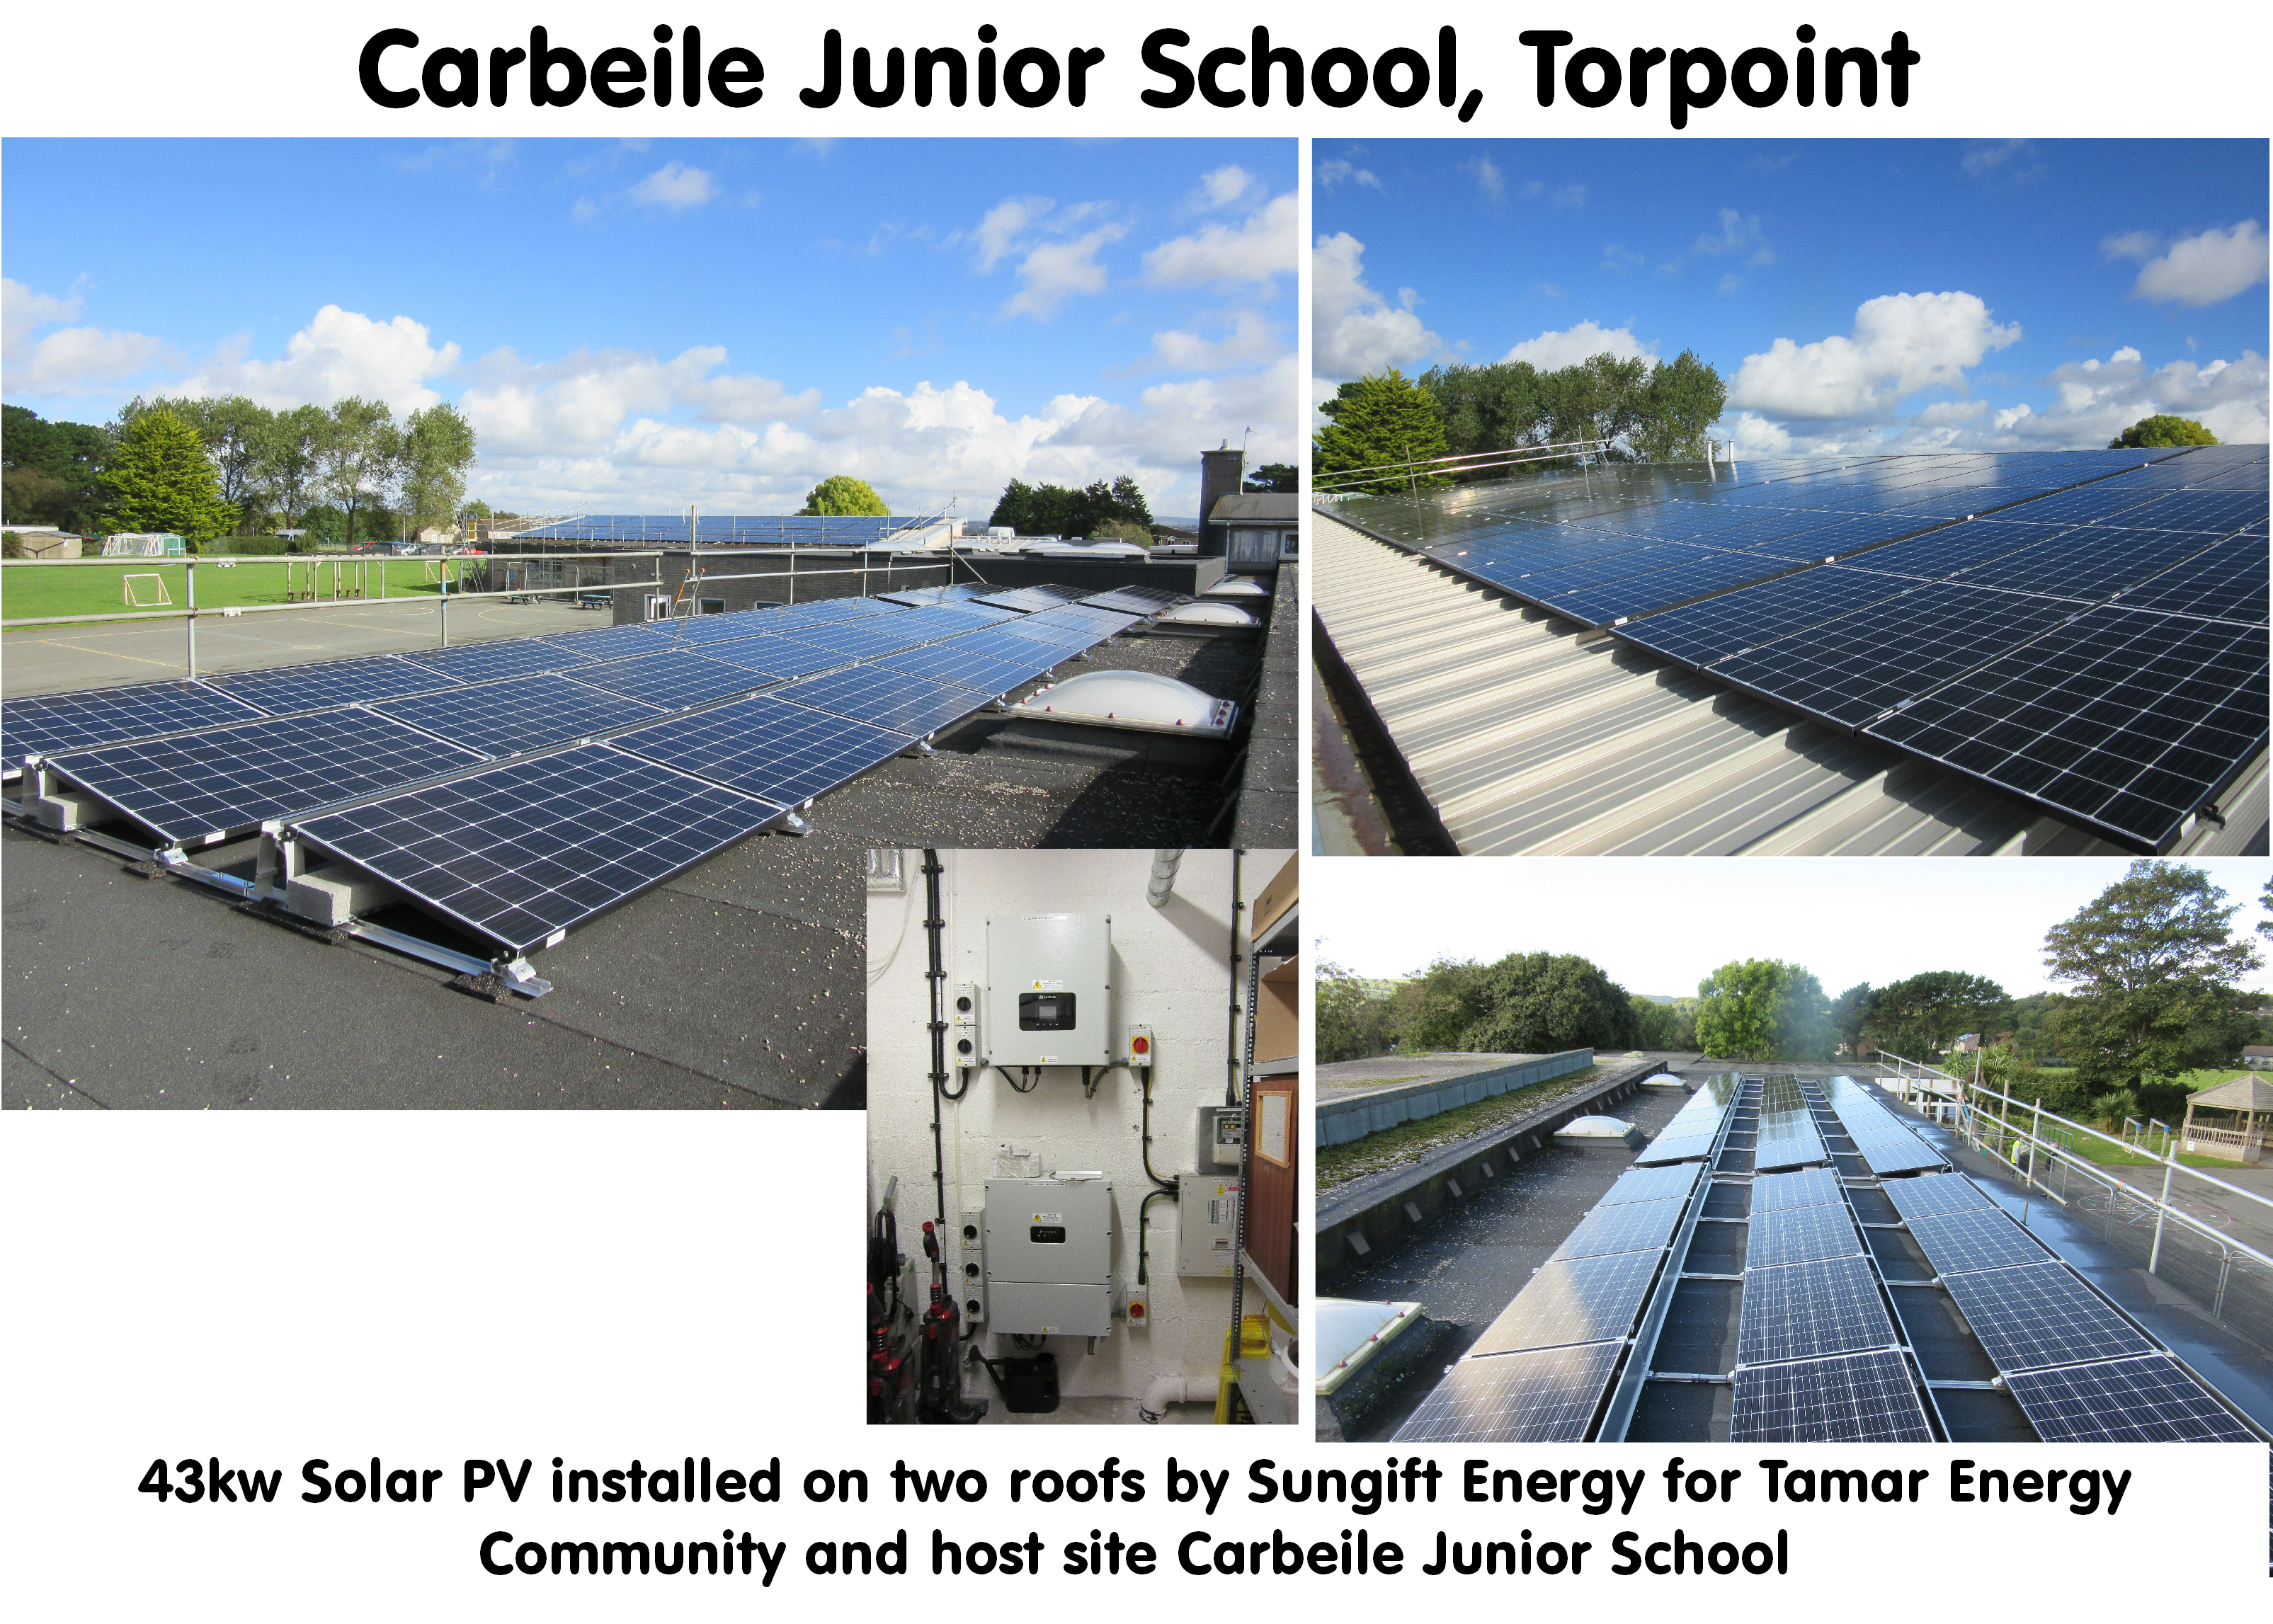 Carbeile Junior School